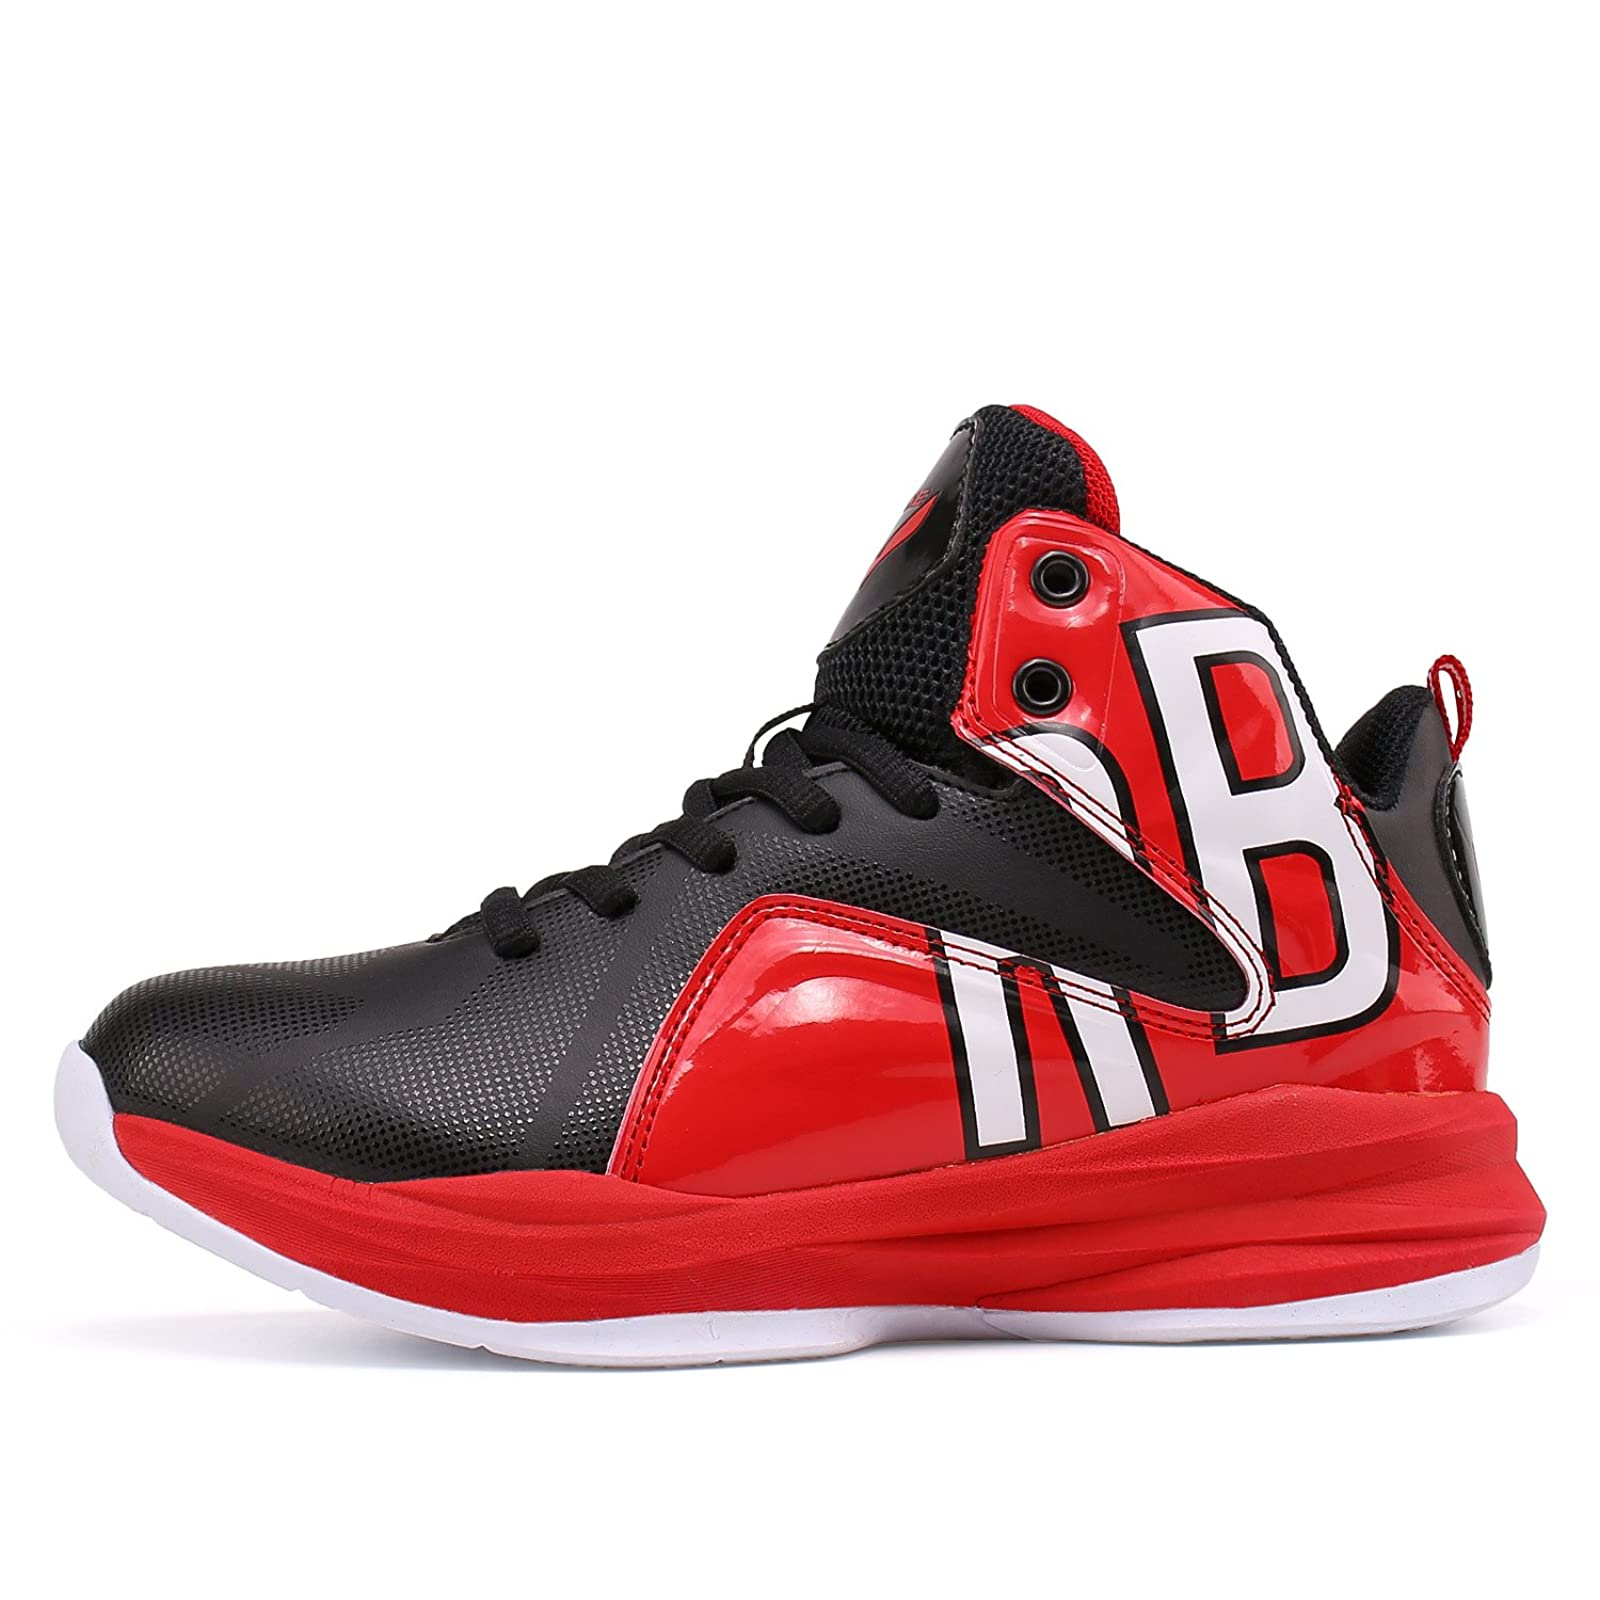 WETIKE Kids Basketball Shoes High-Top Sneakers Outdoor Trainers Durable Sport Shoes Little Kid//Big Kid